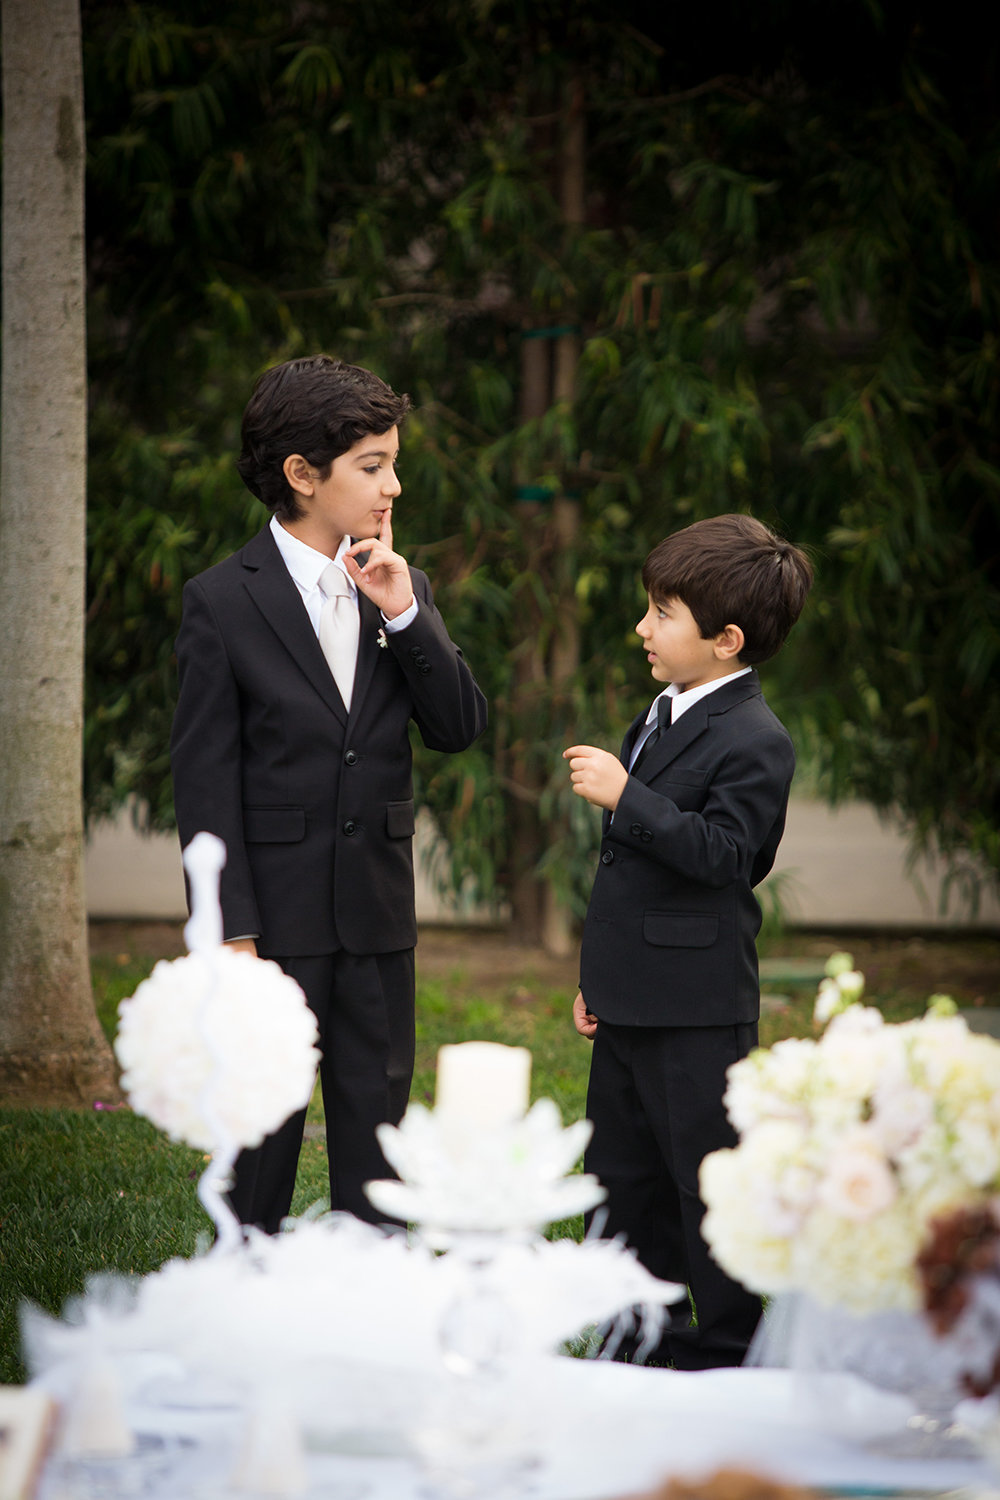 Ring bearers distracted during the wedding ceremony